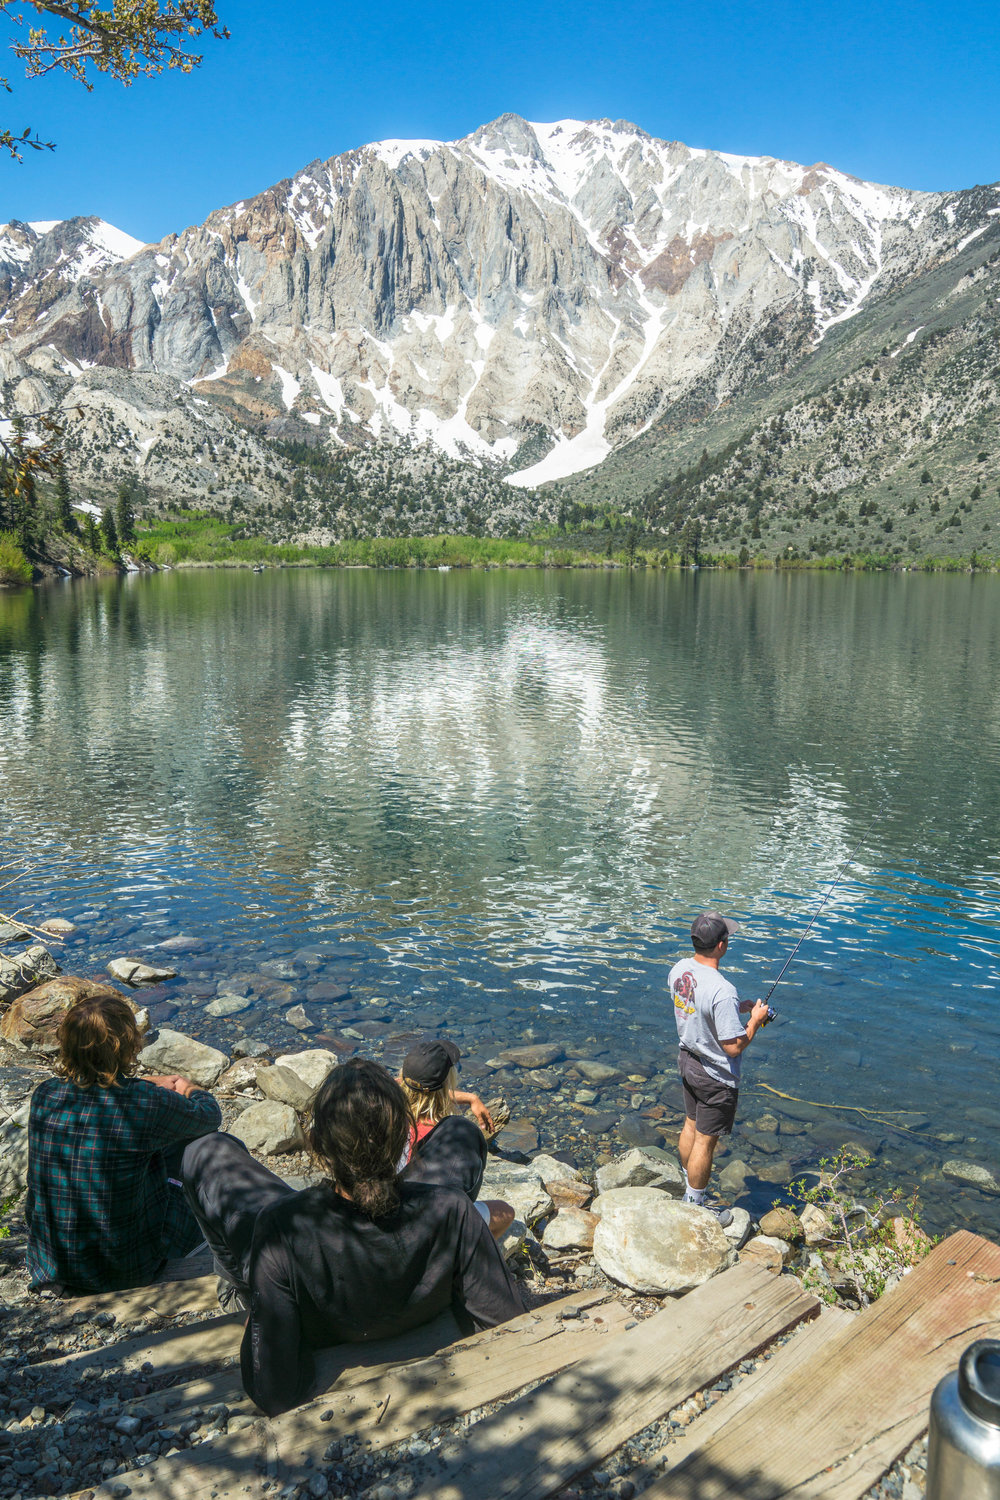 Eager to get in some final fishing before the 7-hour drive back home, we head to the edge of the tranquil Convict Lake.